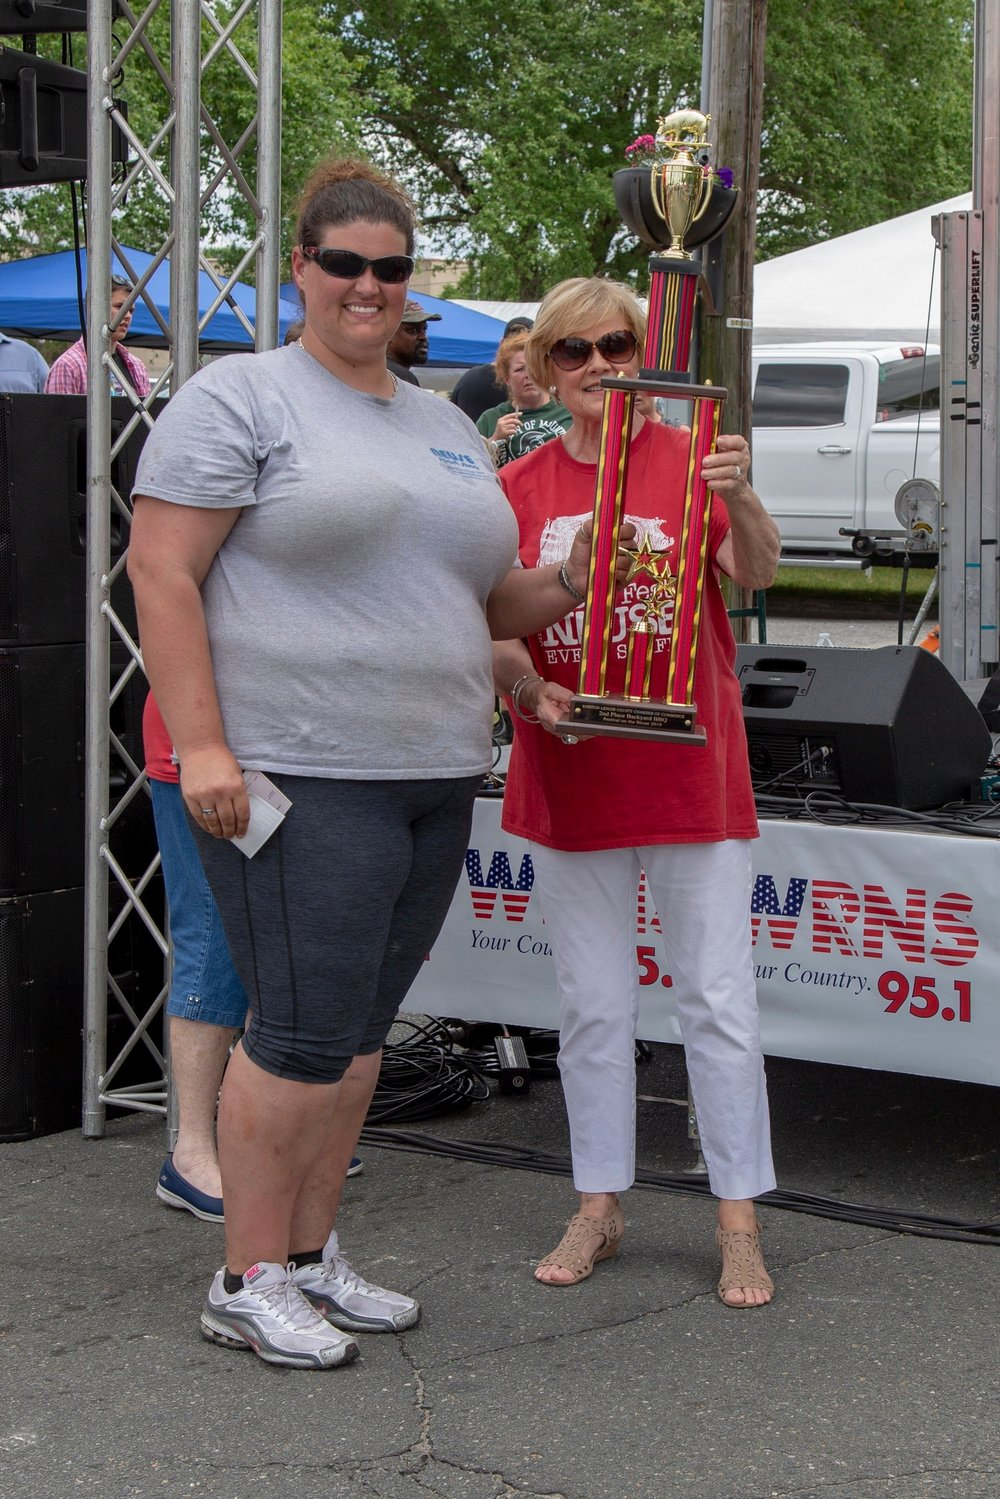 2nd Place Team Brittany Heath, B&W BBQ Sponsor: Tommy Creech/Creech painting $200 and Trophy